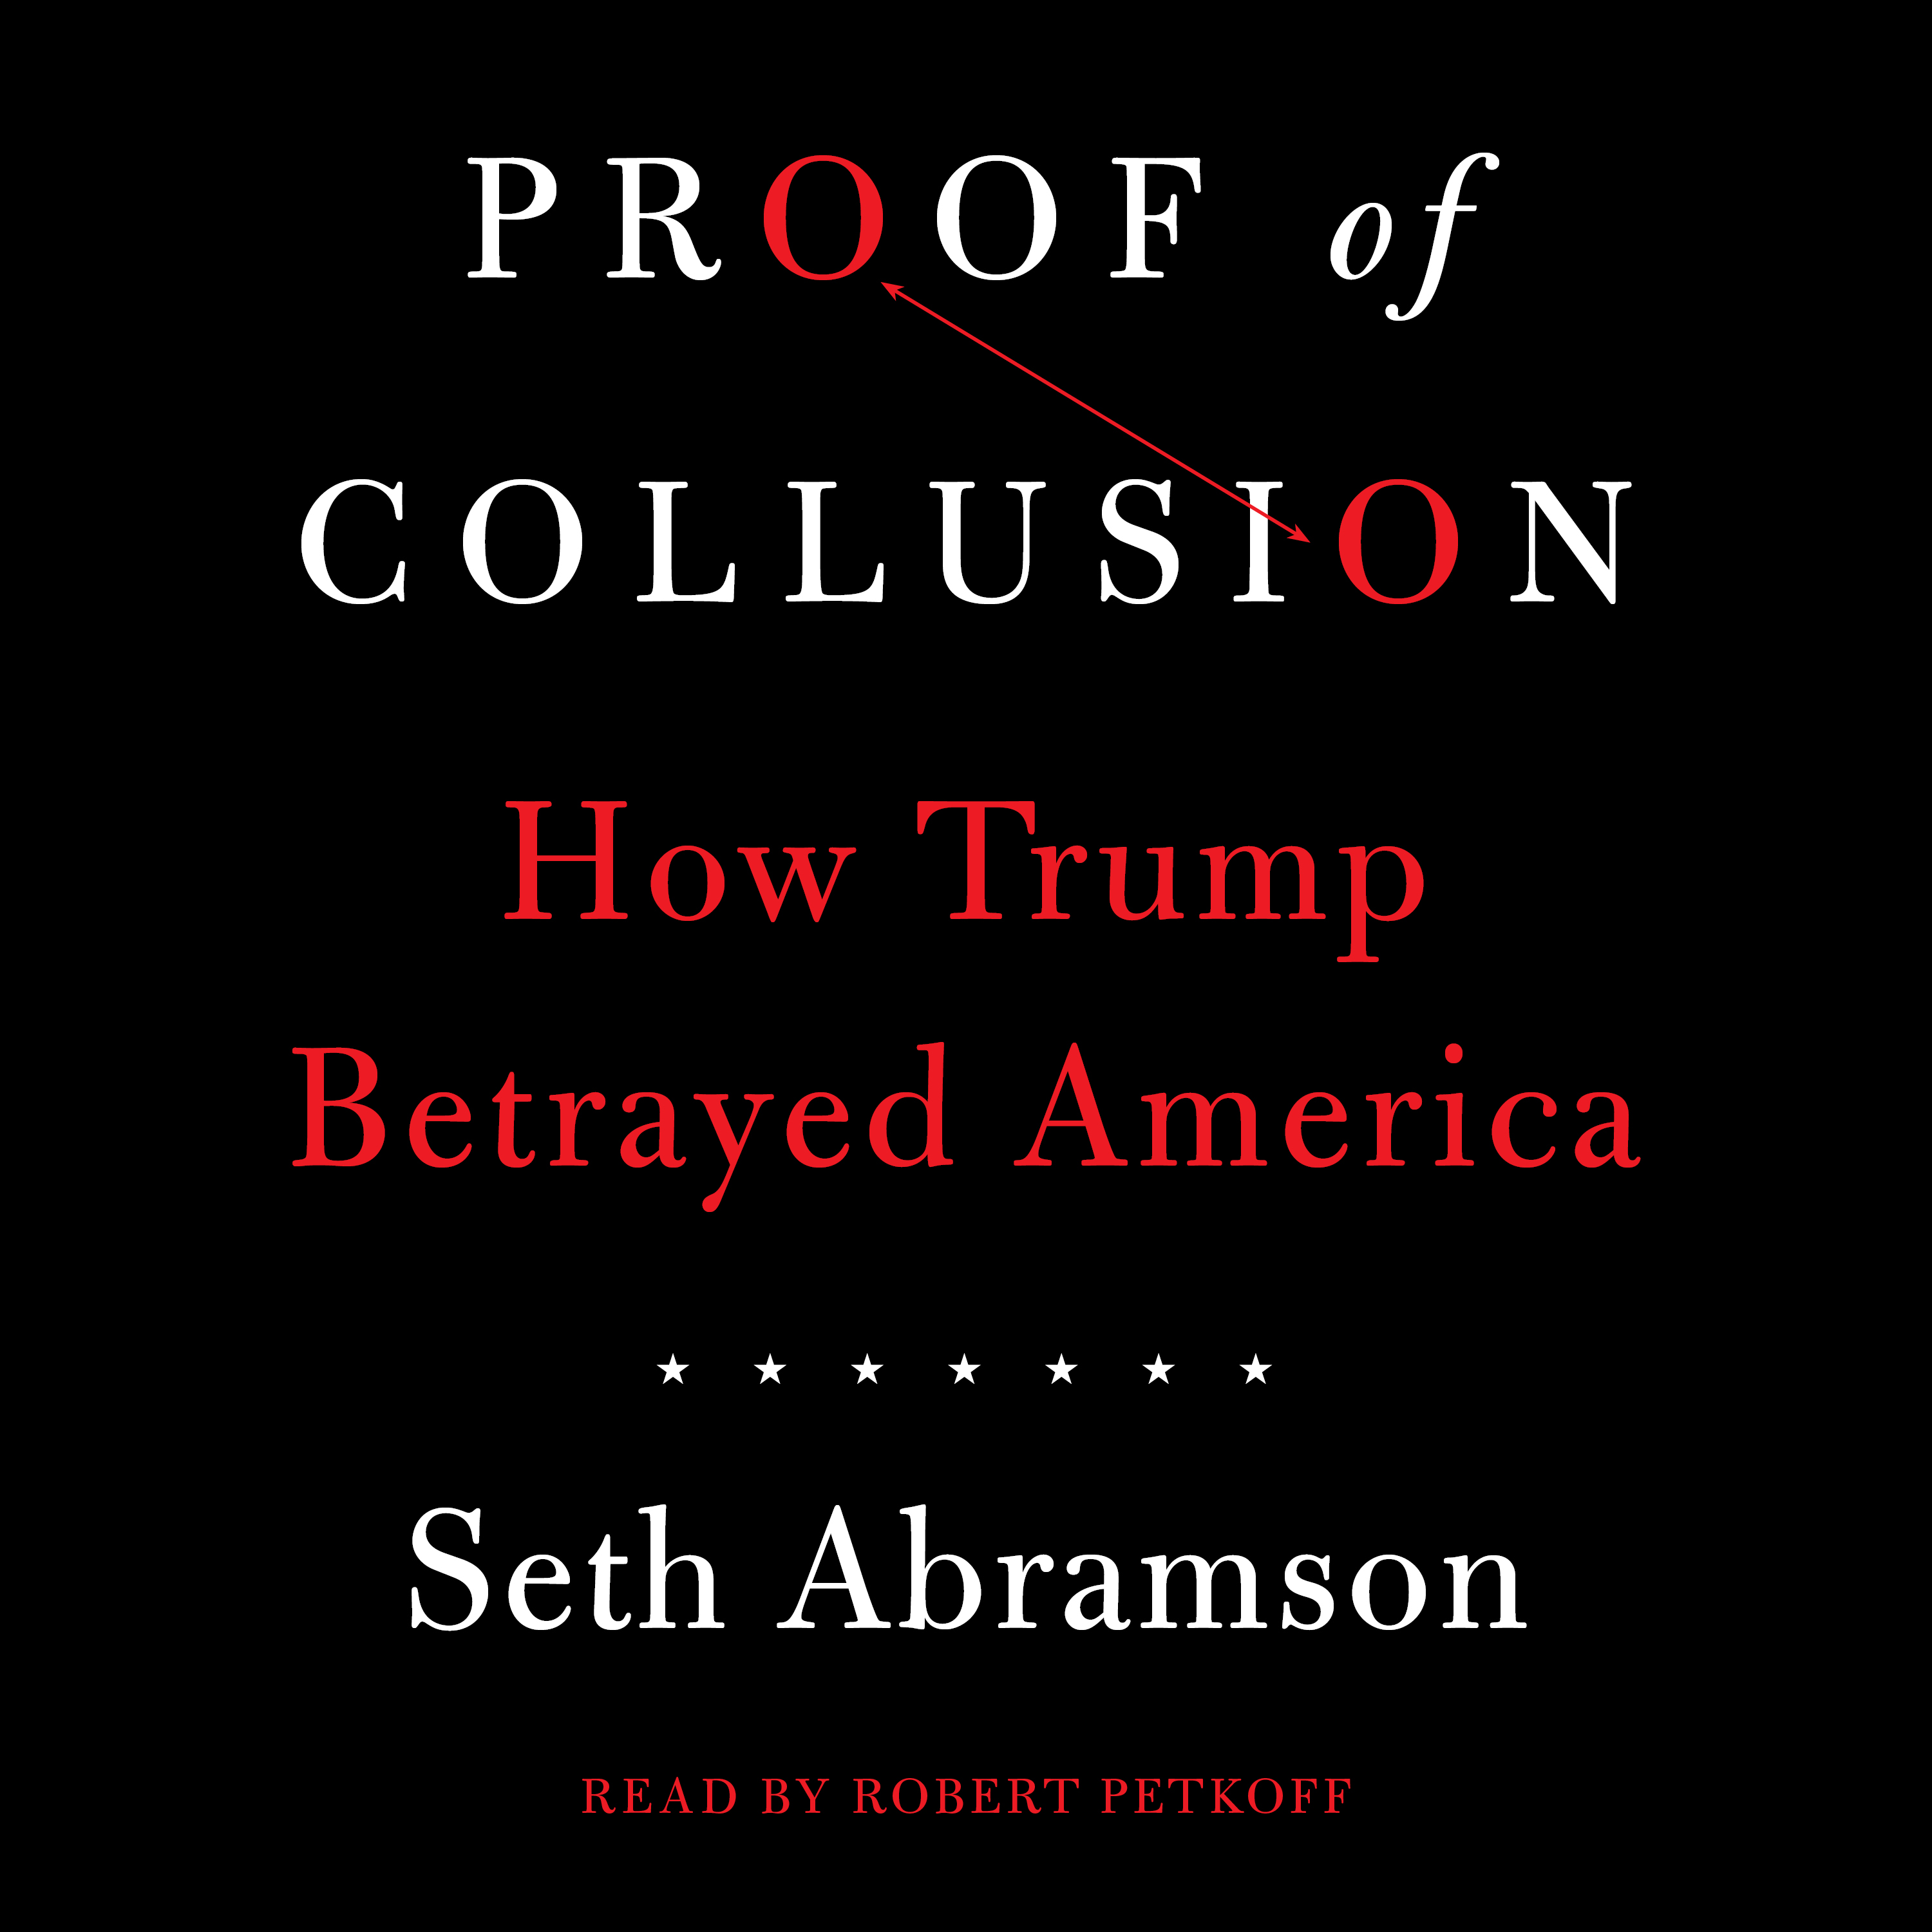 Proof of collusion 9781508281184 hr